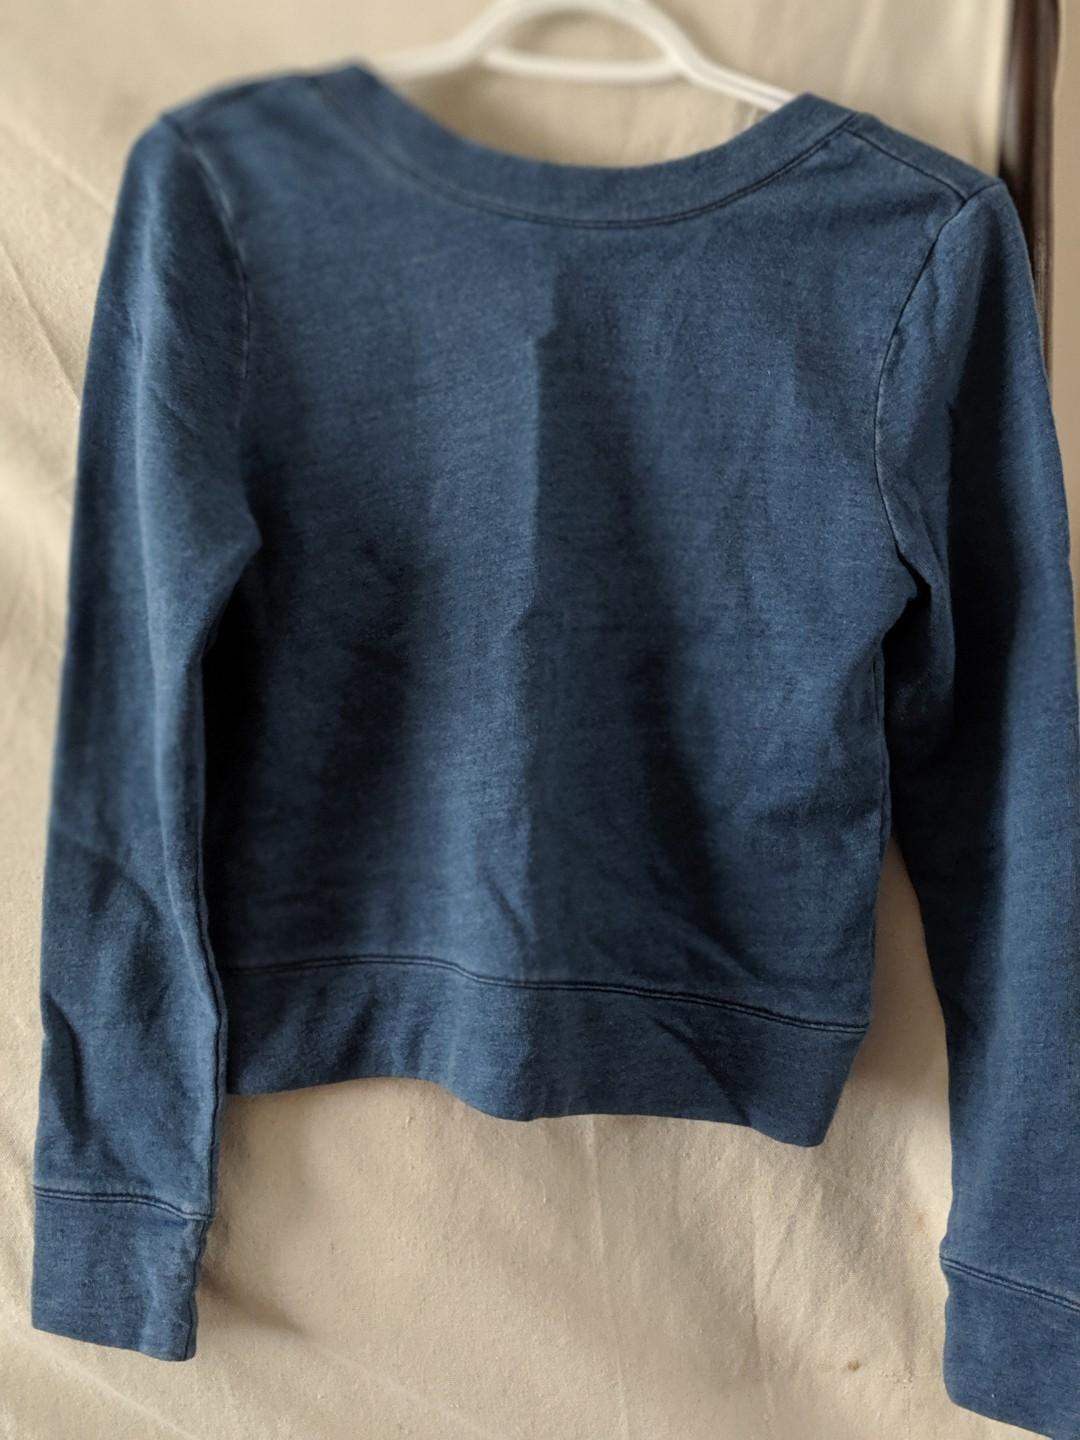 NWT DKNY denim finish cropped sweater (scoop back)